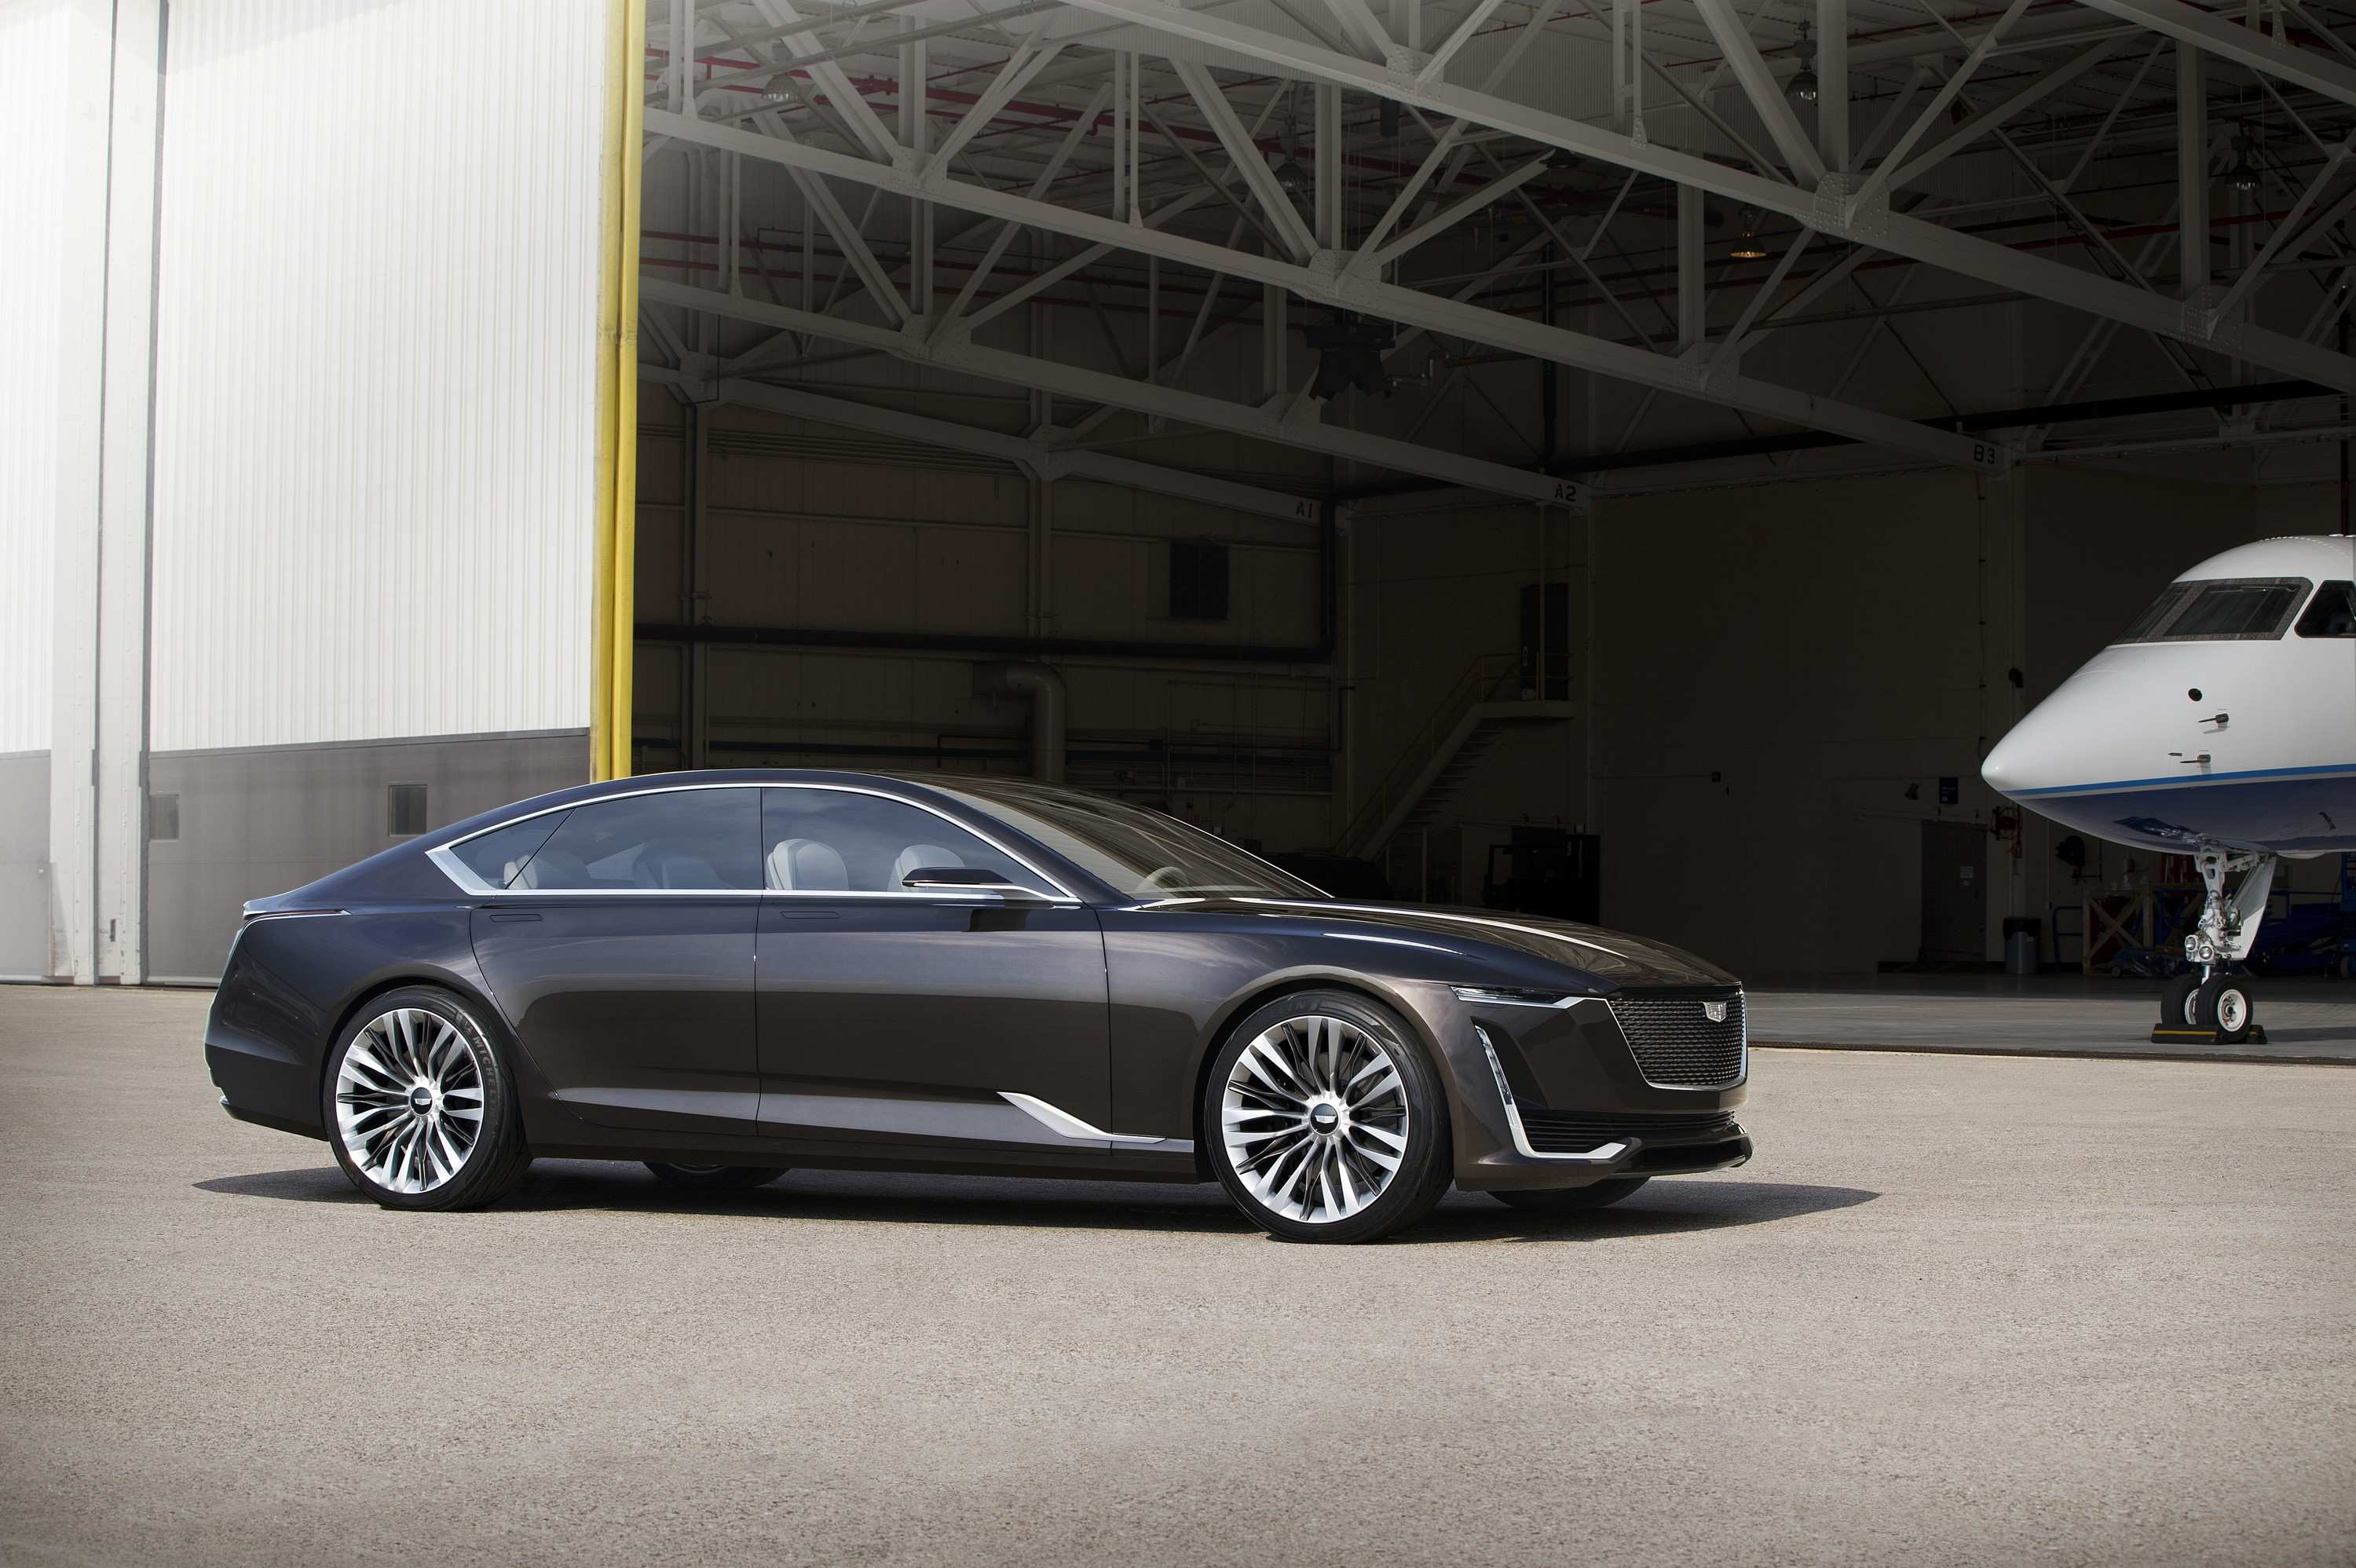 39 Concept of 2020 Cadillac XTS Review with 2020 Cadillac XTS